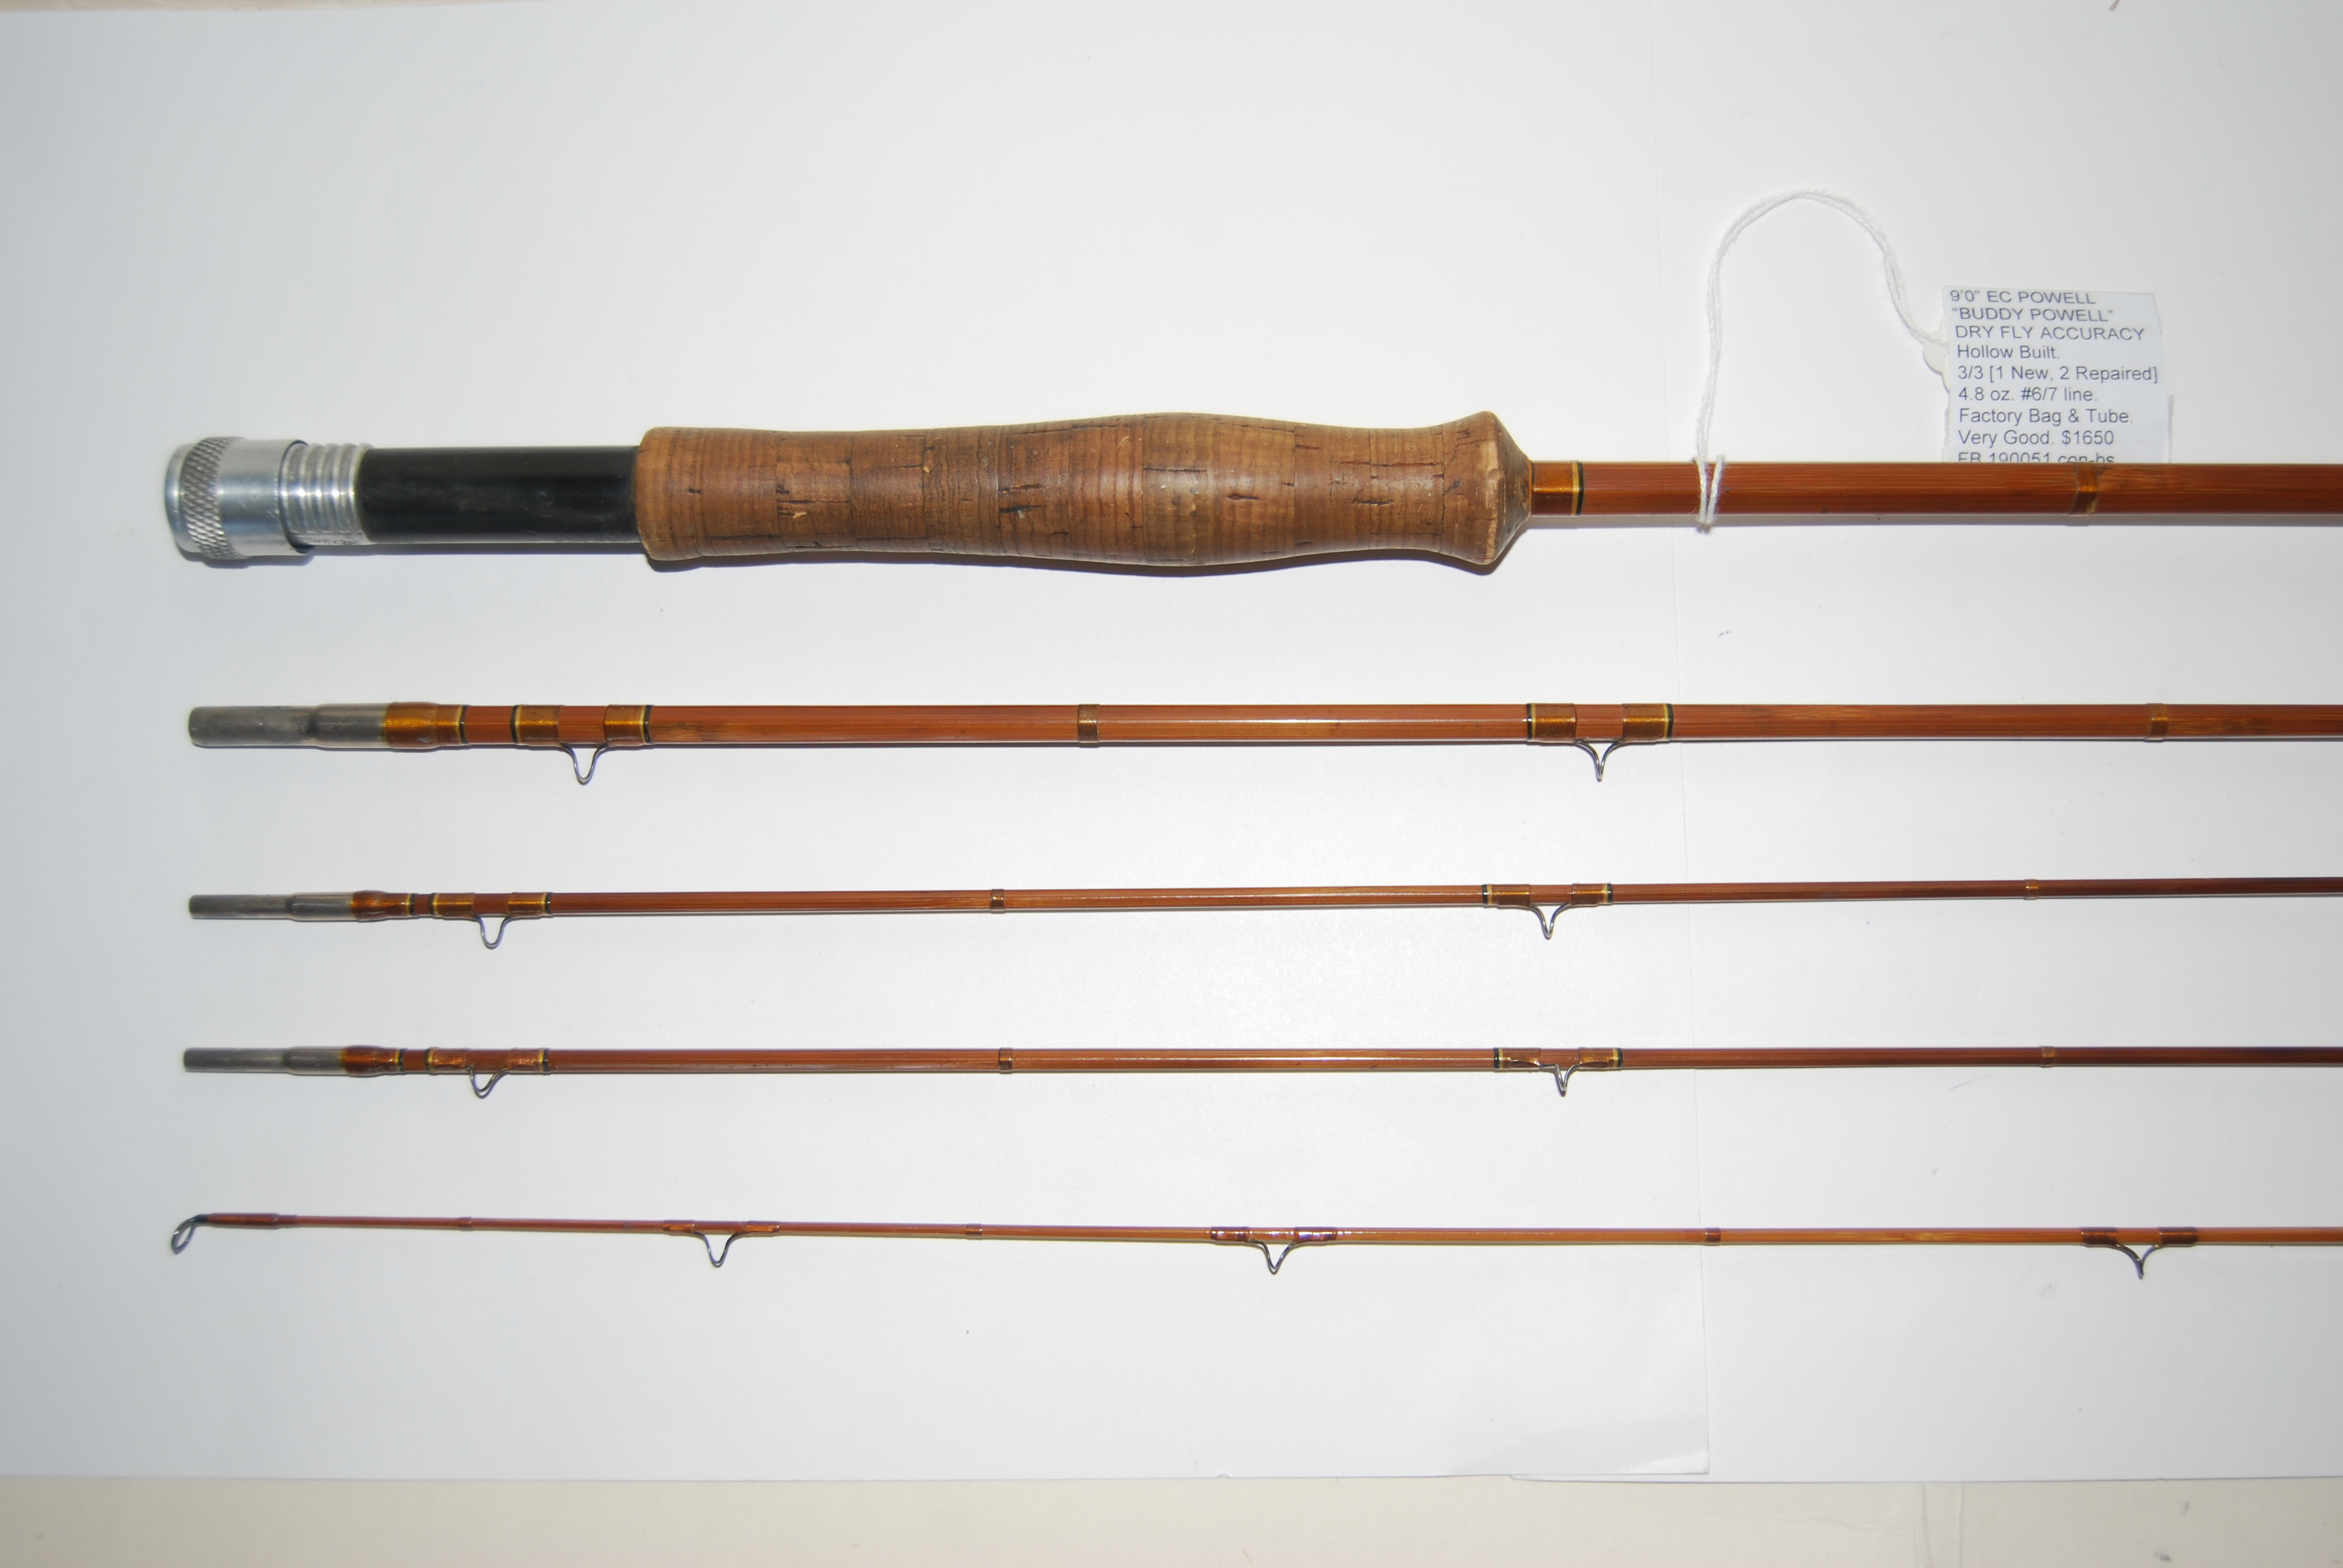 "Image for  9'0"" POWELL E.C. ""BUDDY POWELL"" DRY FLY ACCURACY  3/3 [1 Tip down ½ in.; 2  tips have 1-in.repair wrap below first snake guide from tip; 3rd tip factory replacement] 4.8 oz. #6/7 line; Bag & Tube."